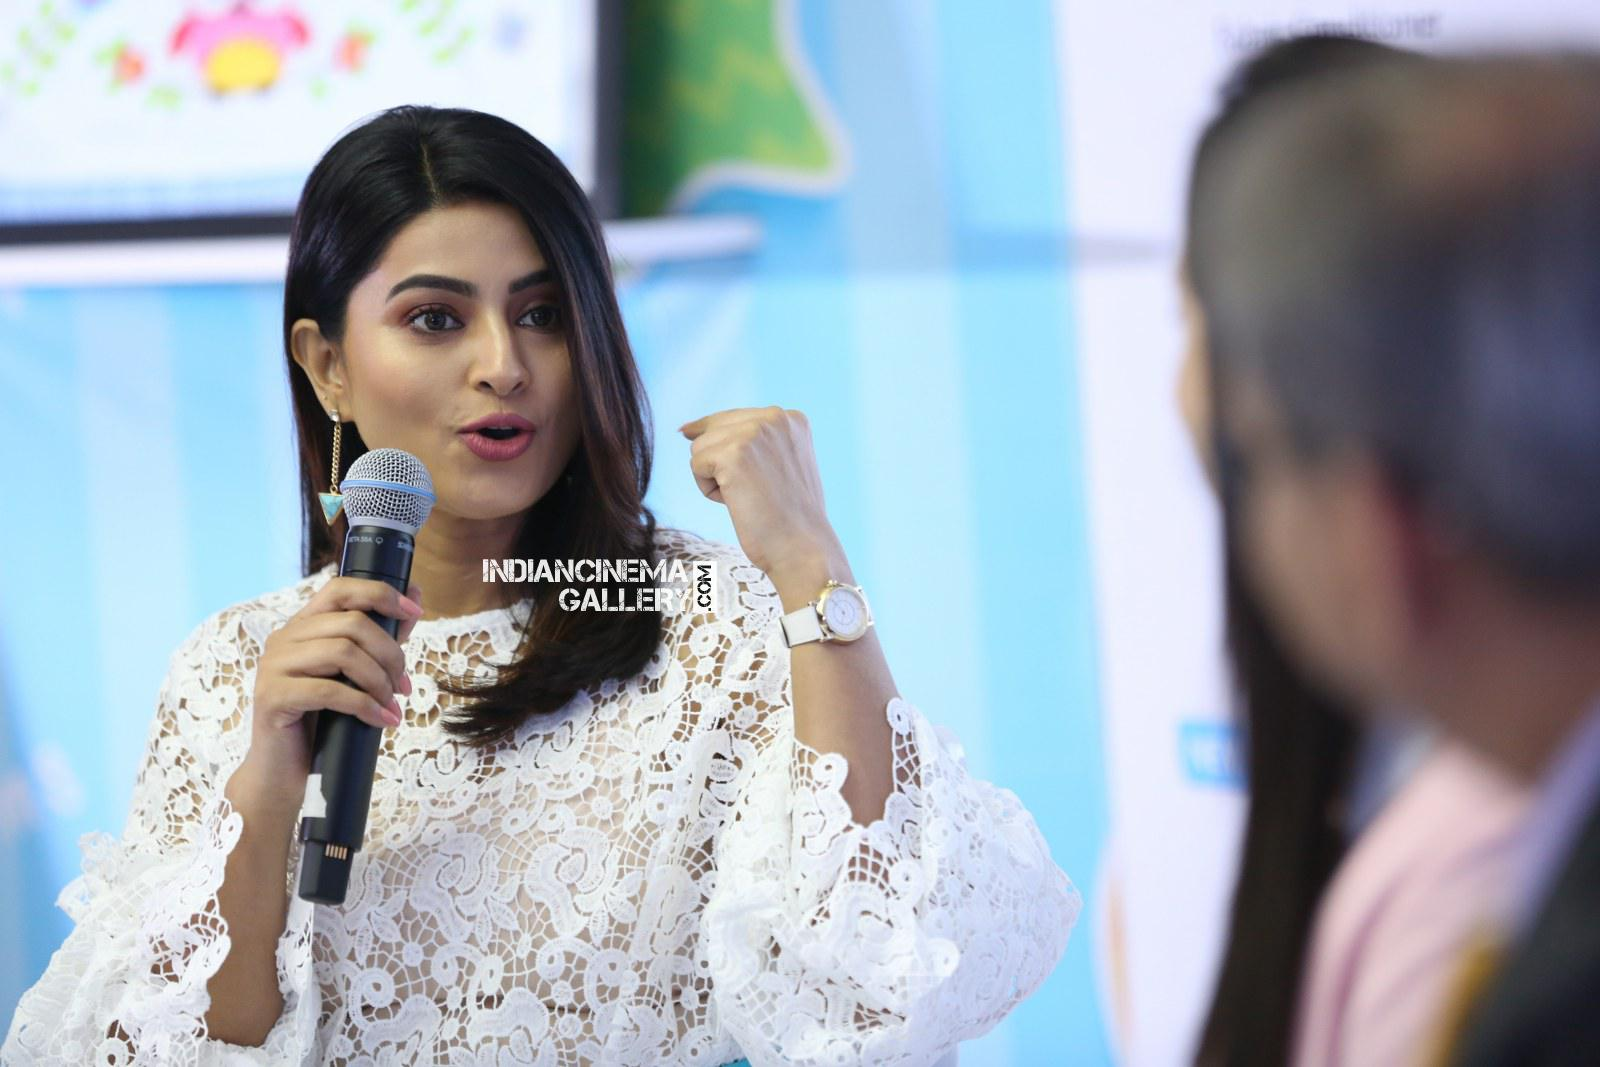 sneha comfort pure fabric conditioner launch (26)